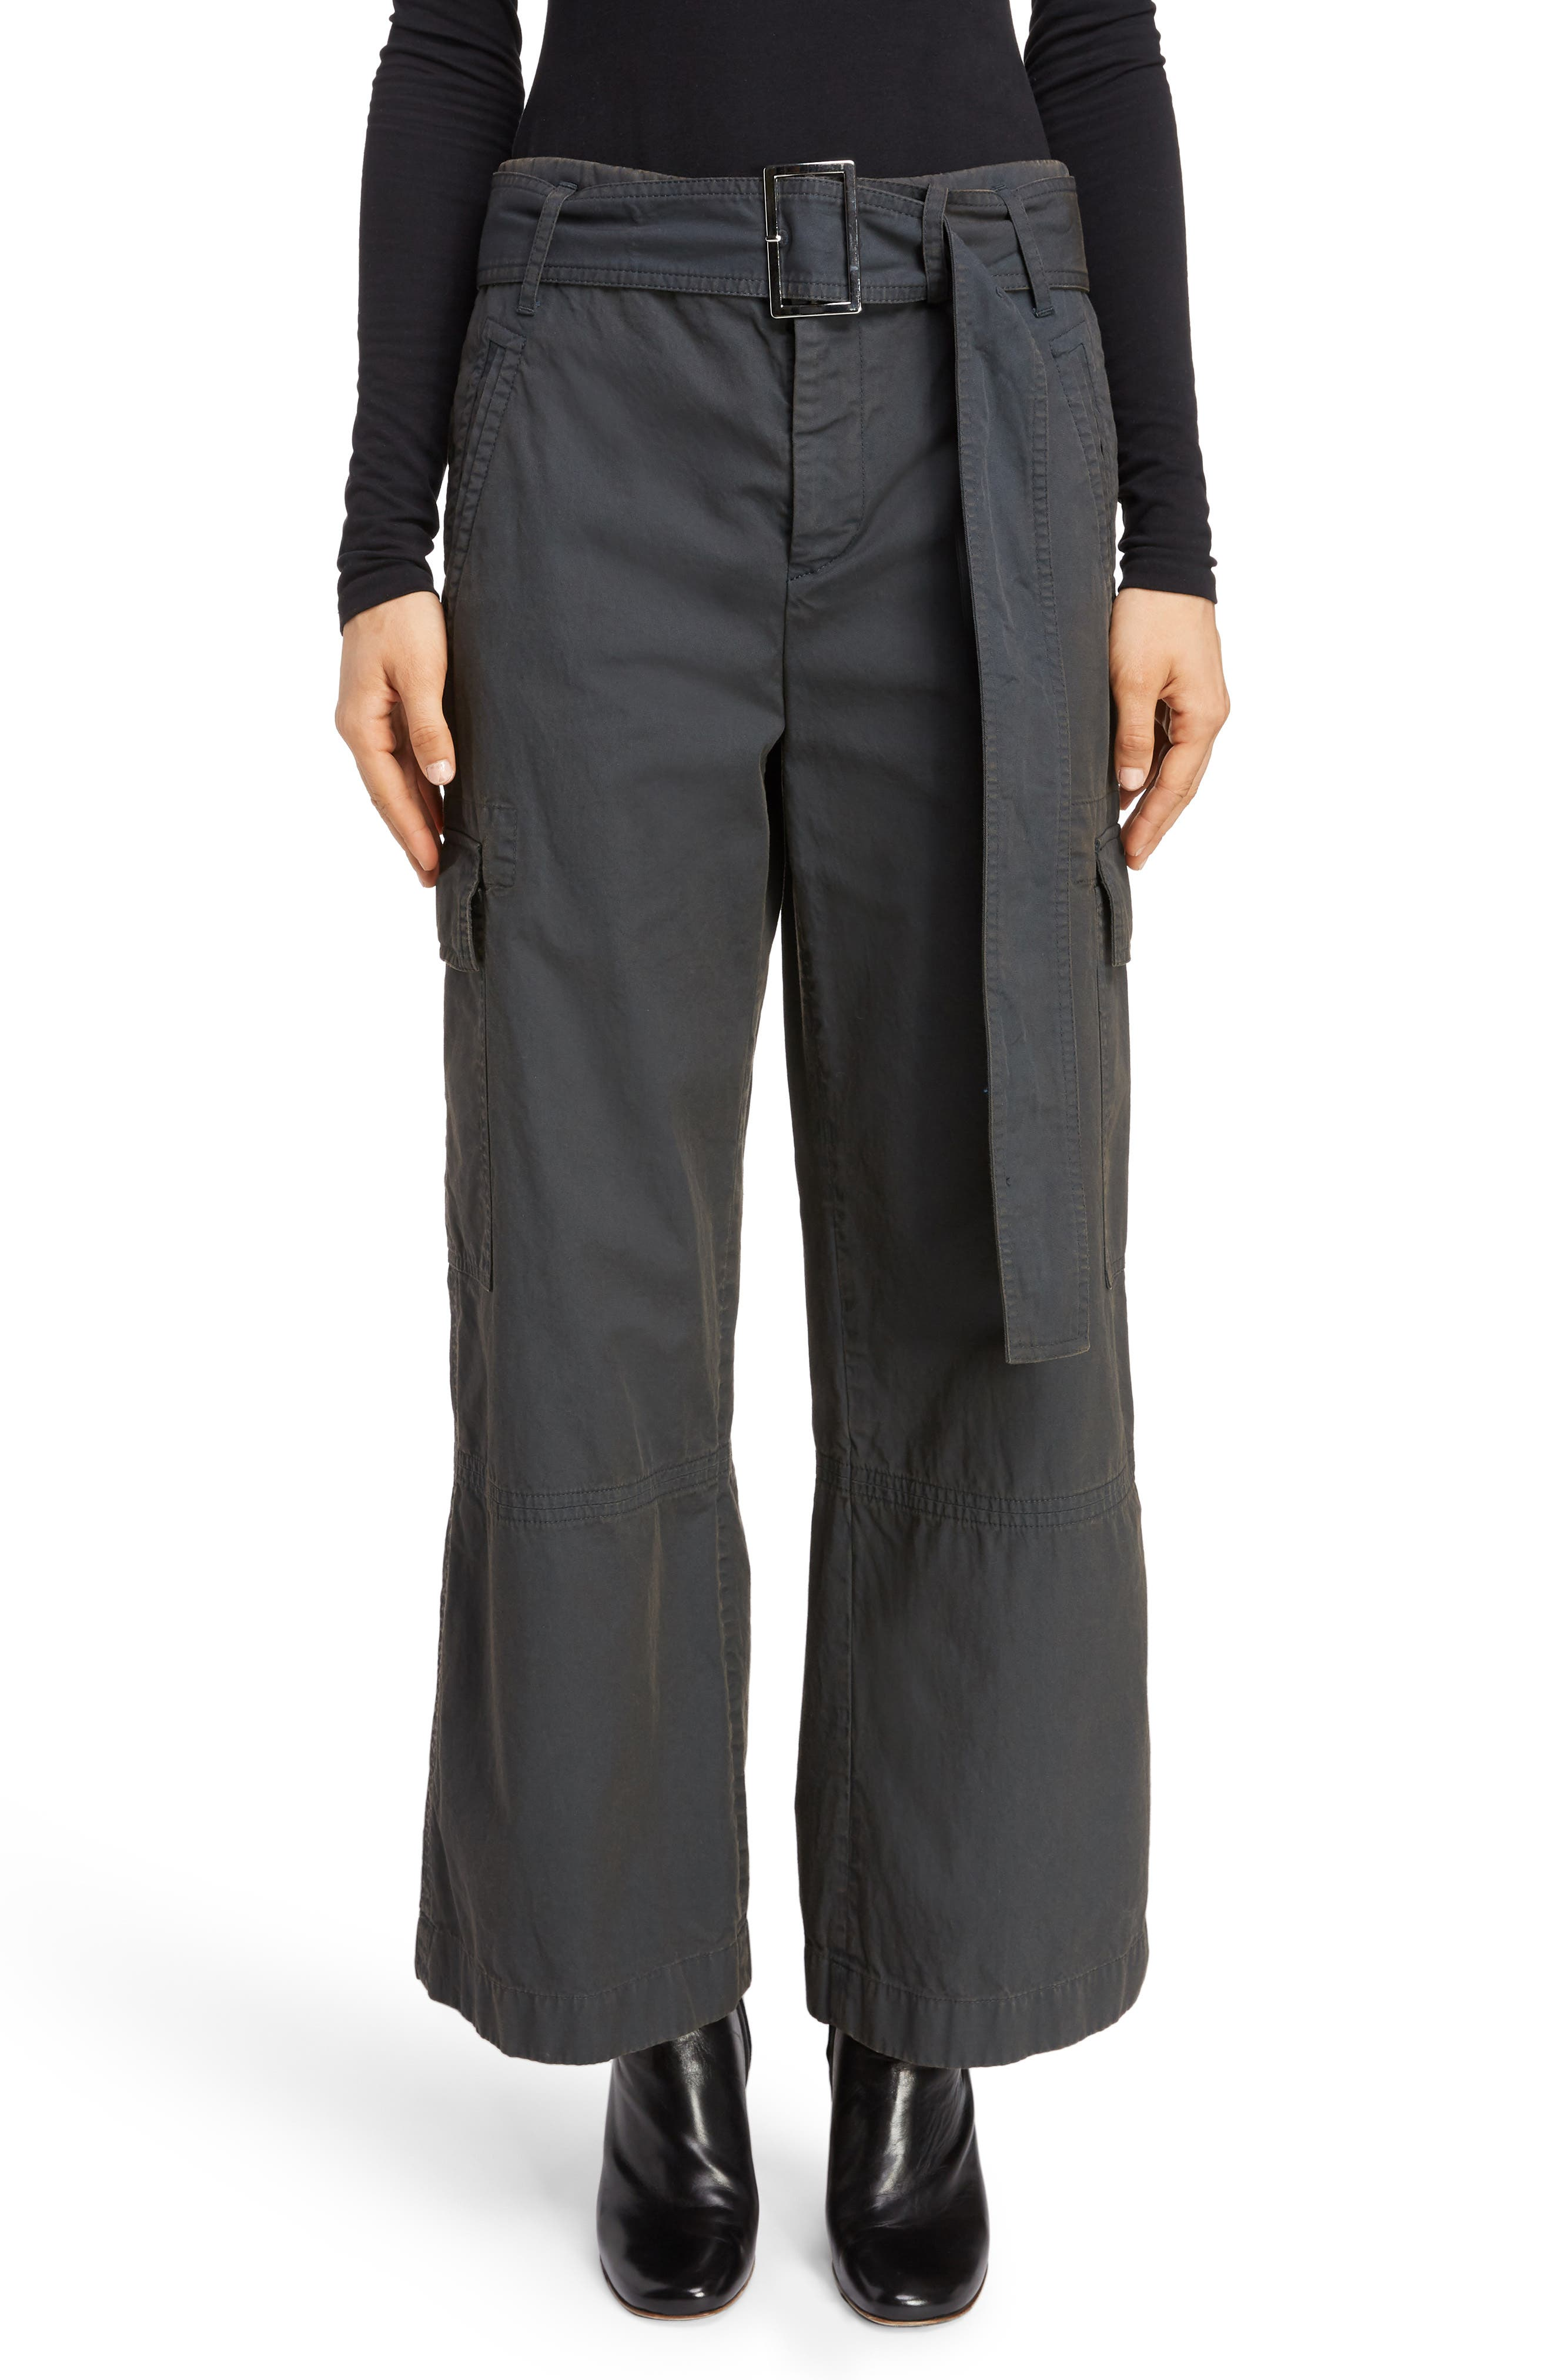 ACNE STUDIOS Patrice Cotton Chino Trousers, Main, color, ANTHRACITE GREY